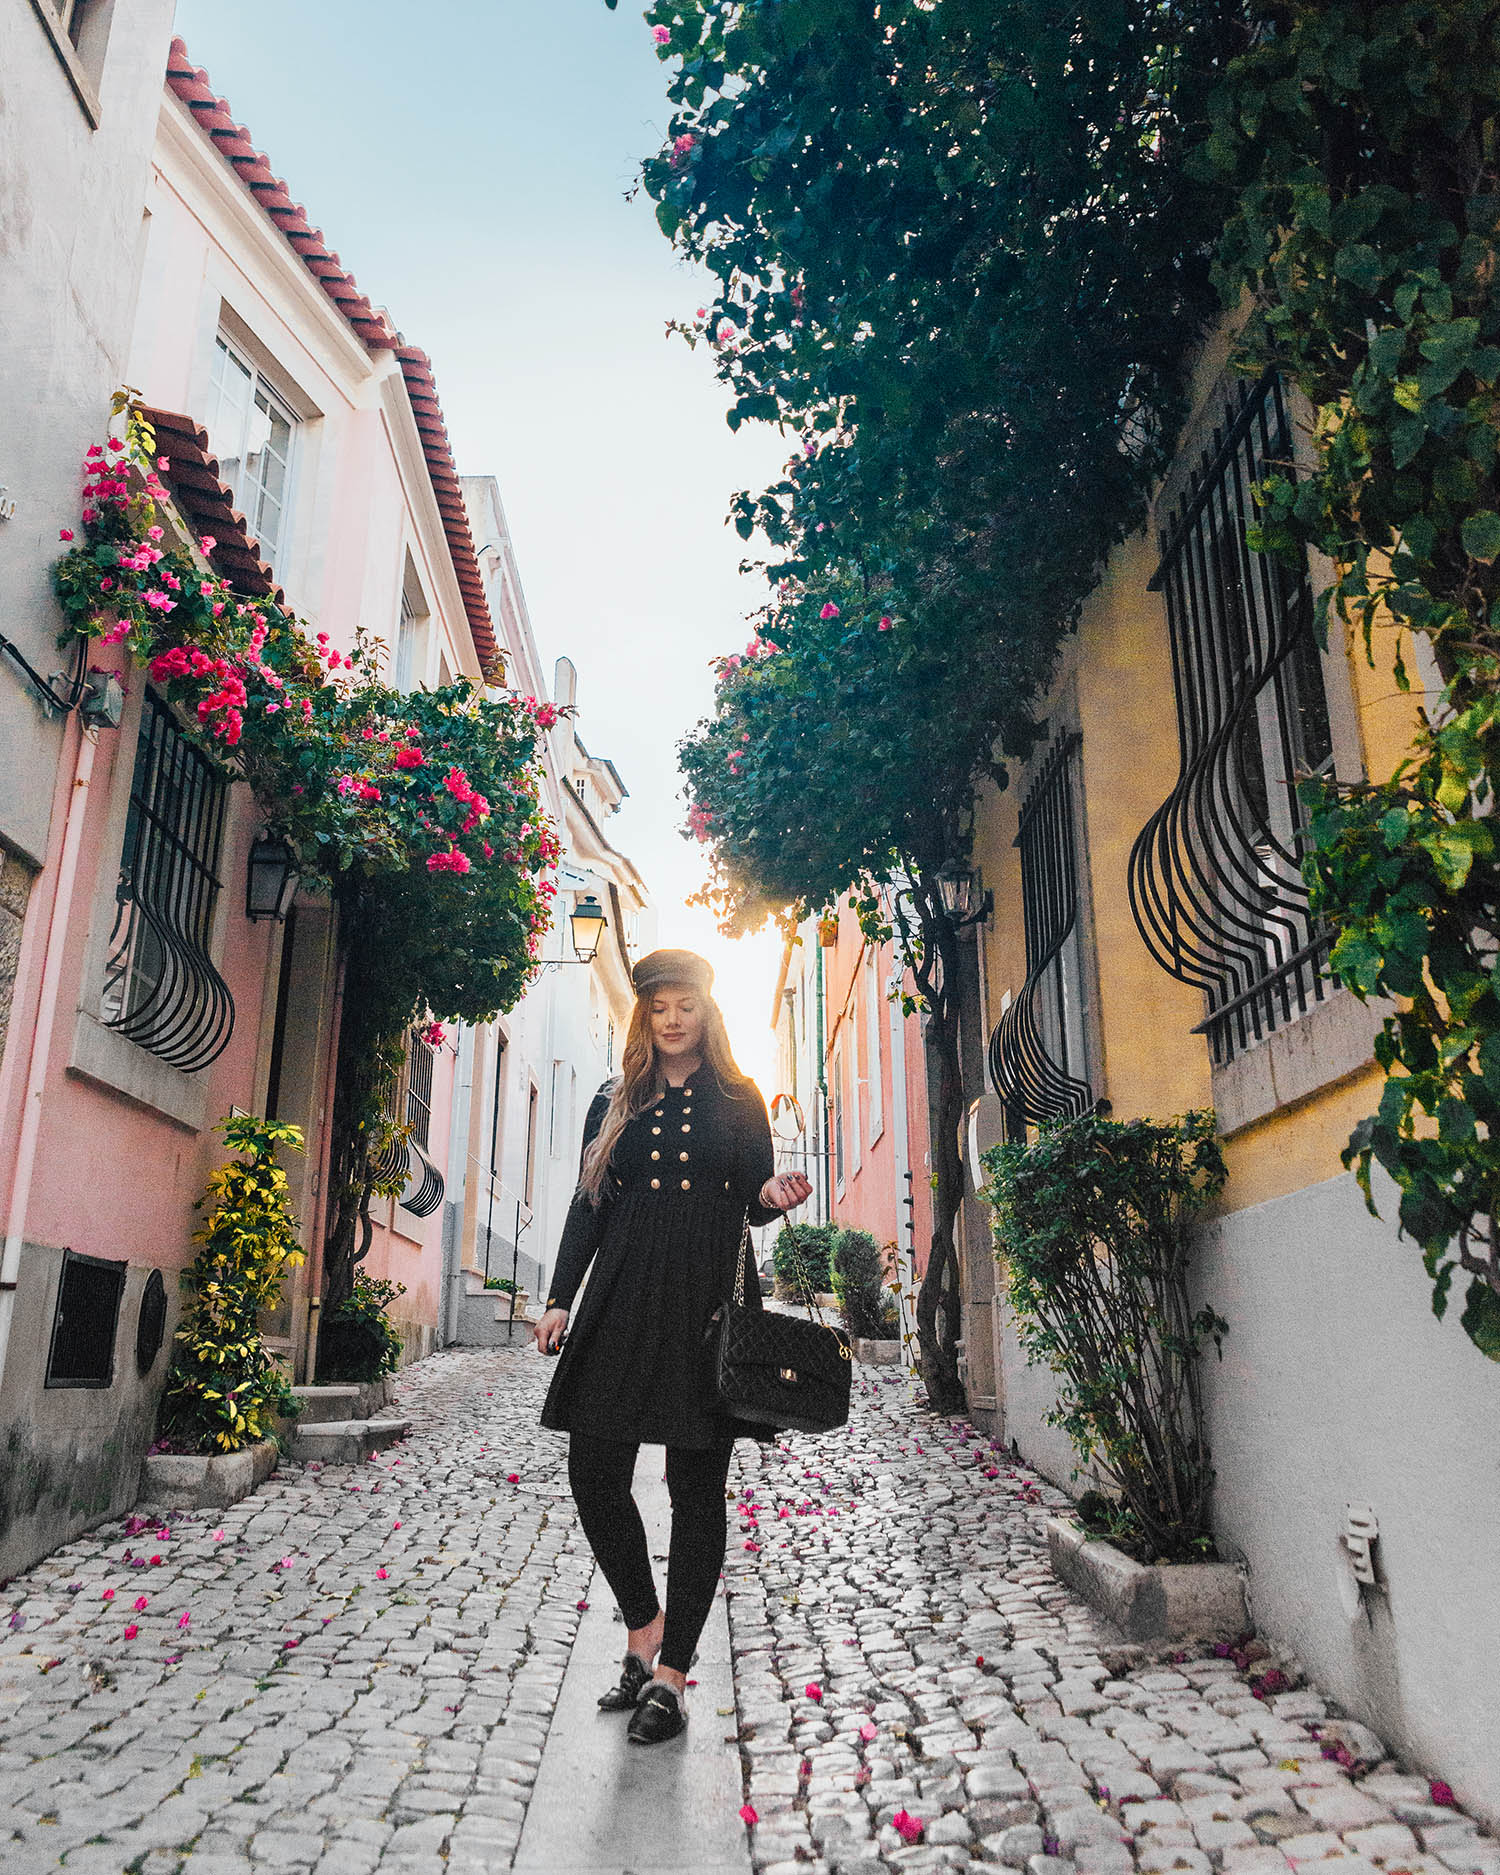 Adaras Black Wardrobe Essentials: Long sleeved black dress / Street of Cascai, Portugal